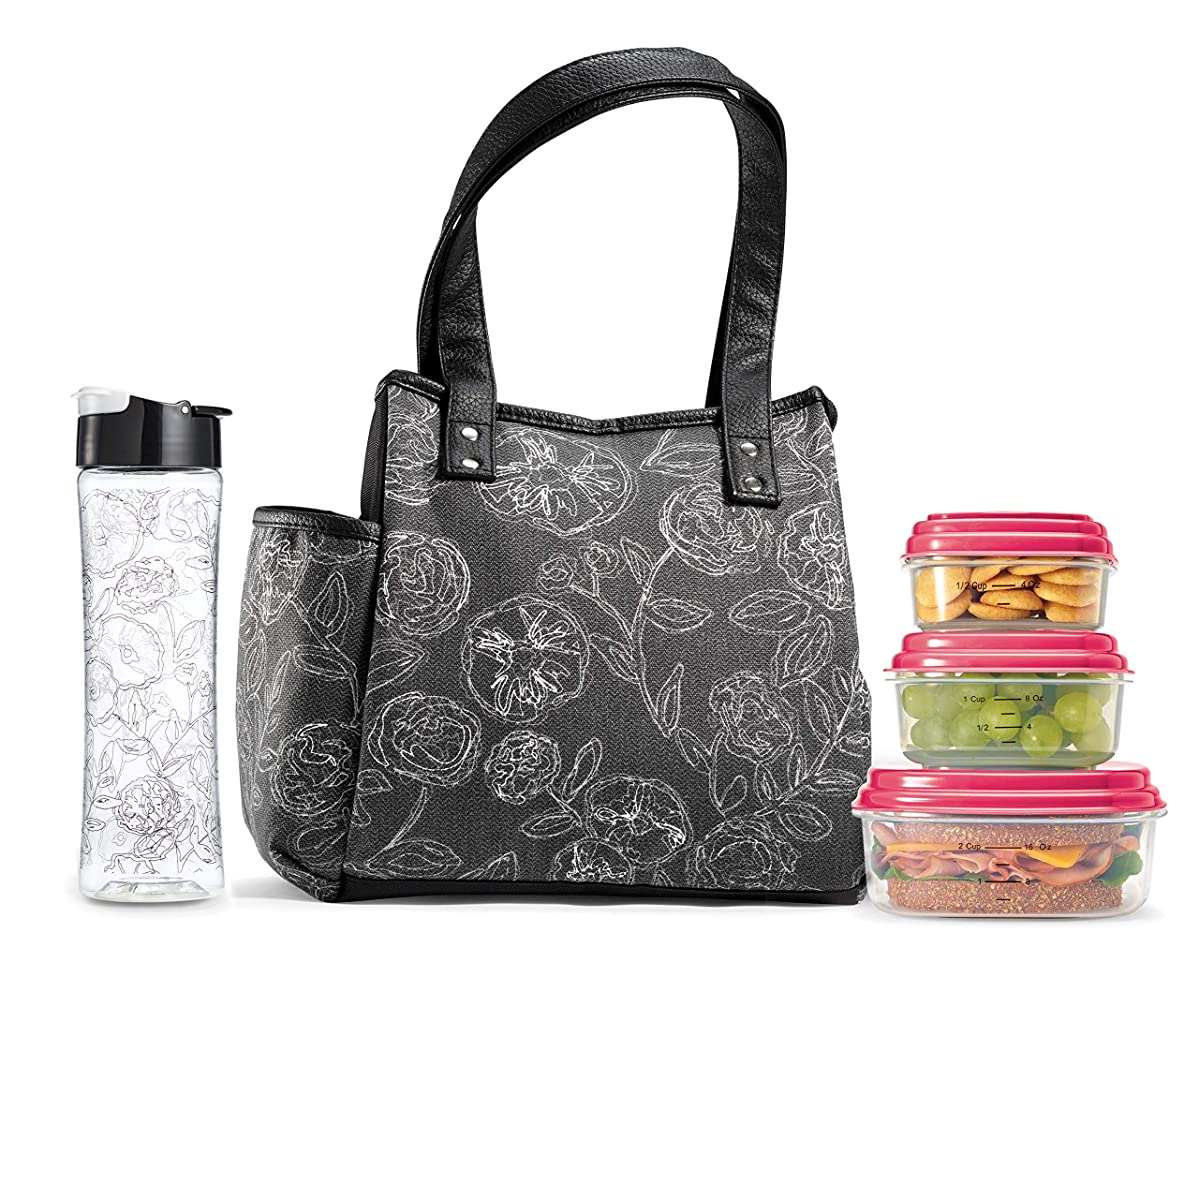 Fit & Fresh Insulated Lunch Bag Cooler Bag Tote Bag Kit for Women/Work/Picnic/Beach, Reusable Containers, Water Bottle, Westerly, Black & White Lace Floral